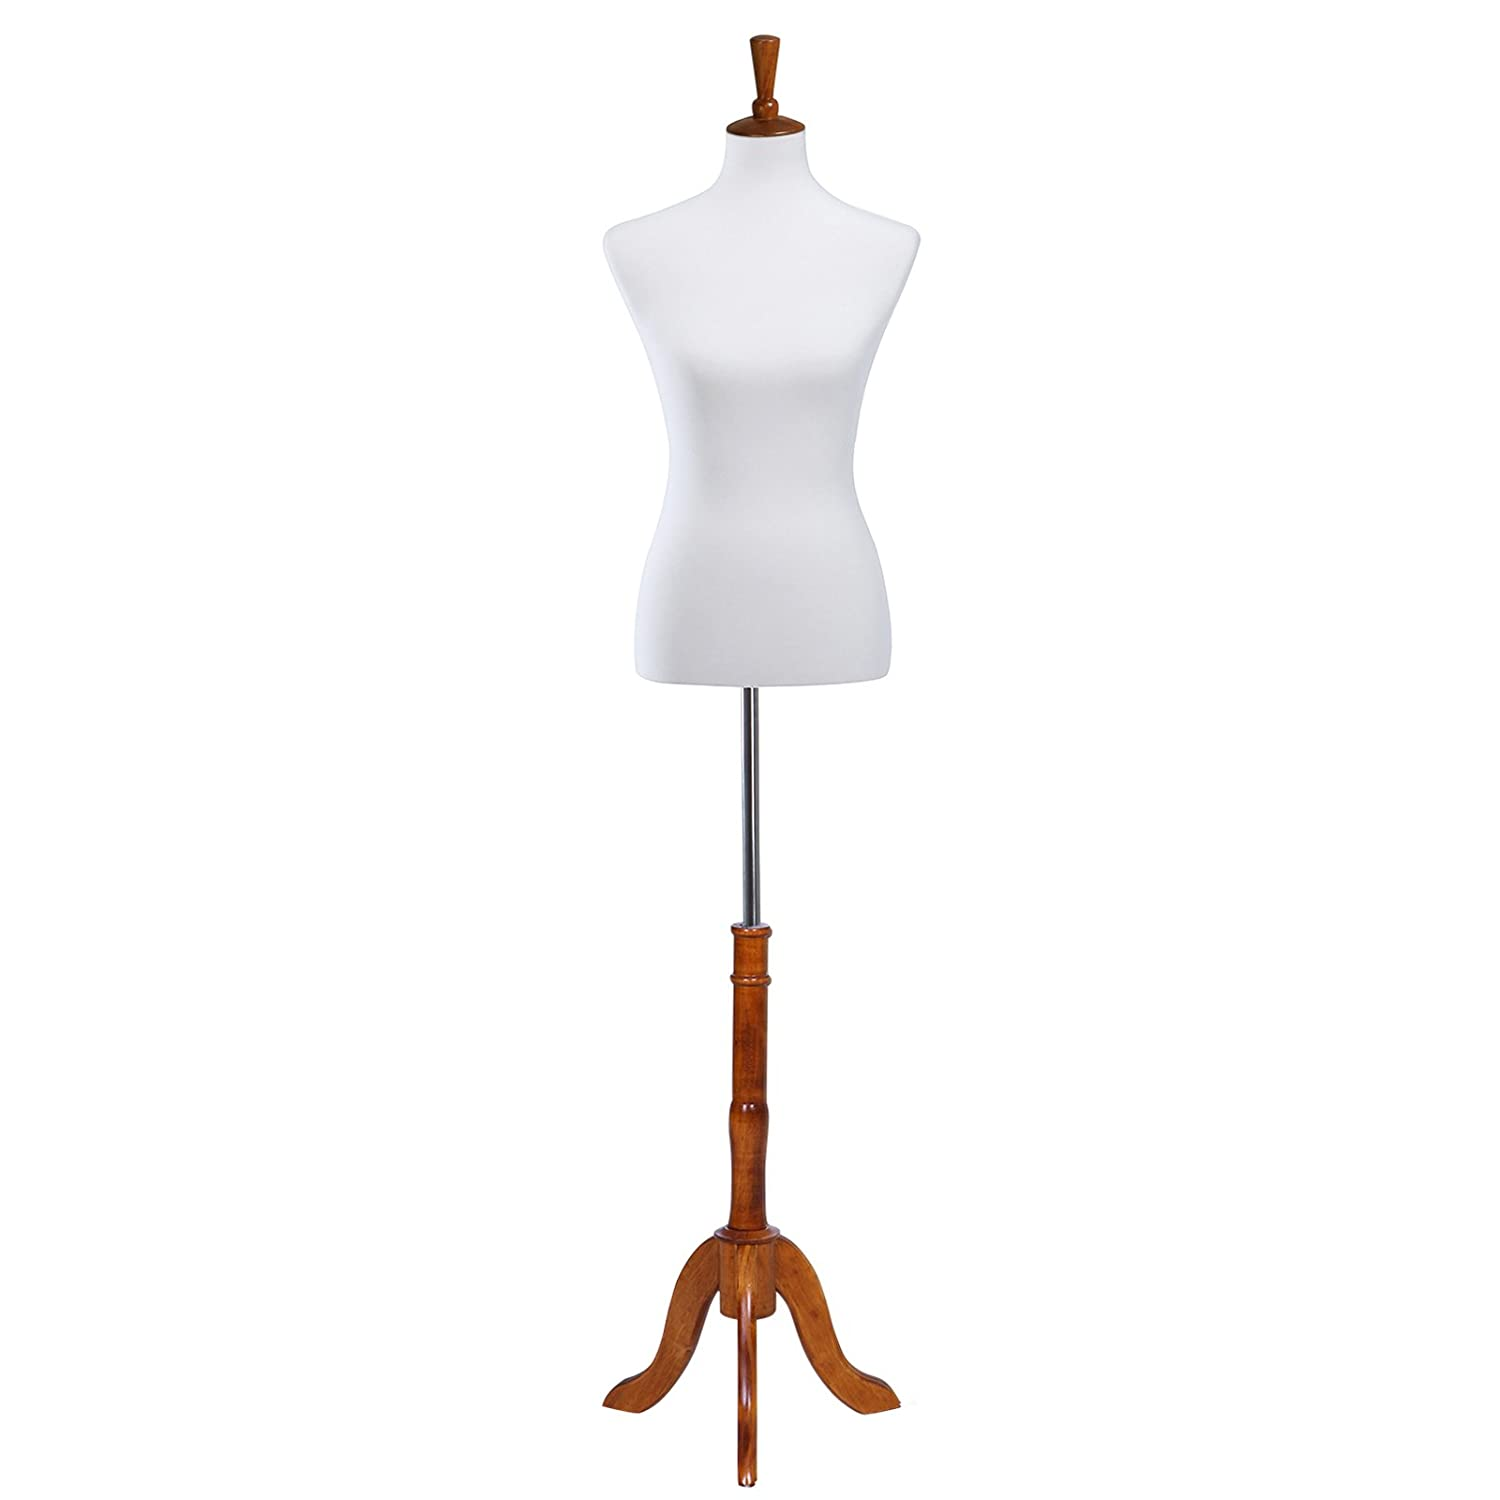 34 26 35 Medium Size 6-8 for Clothing Dress Jewelry Display Photography White UMDF04WT SONGMICS Female Mannequin Torso Body Form with Adjustable Tripod Stand